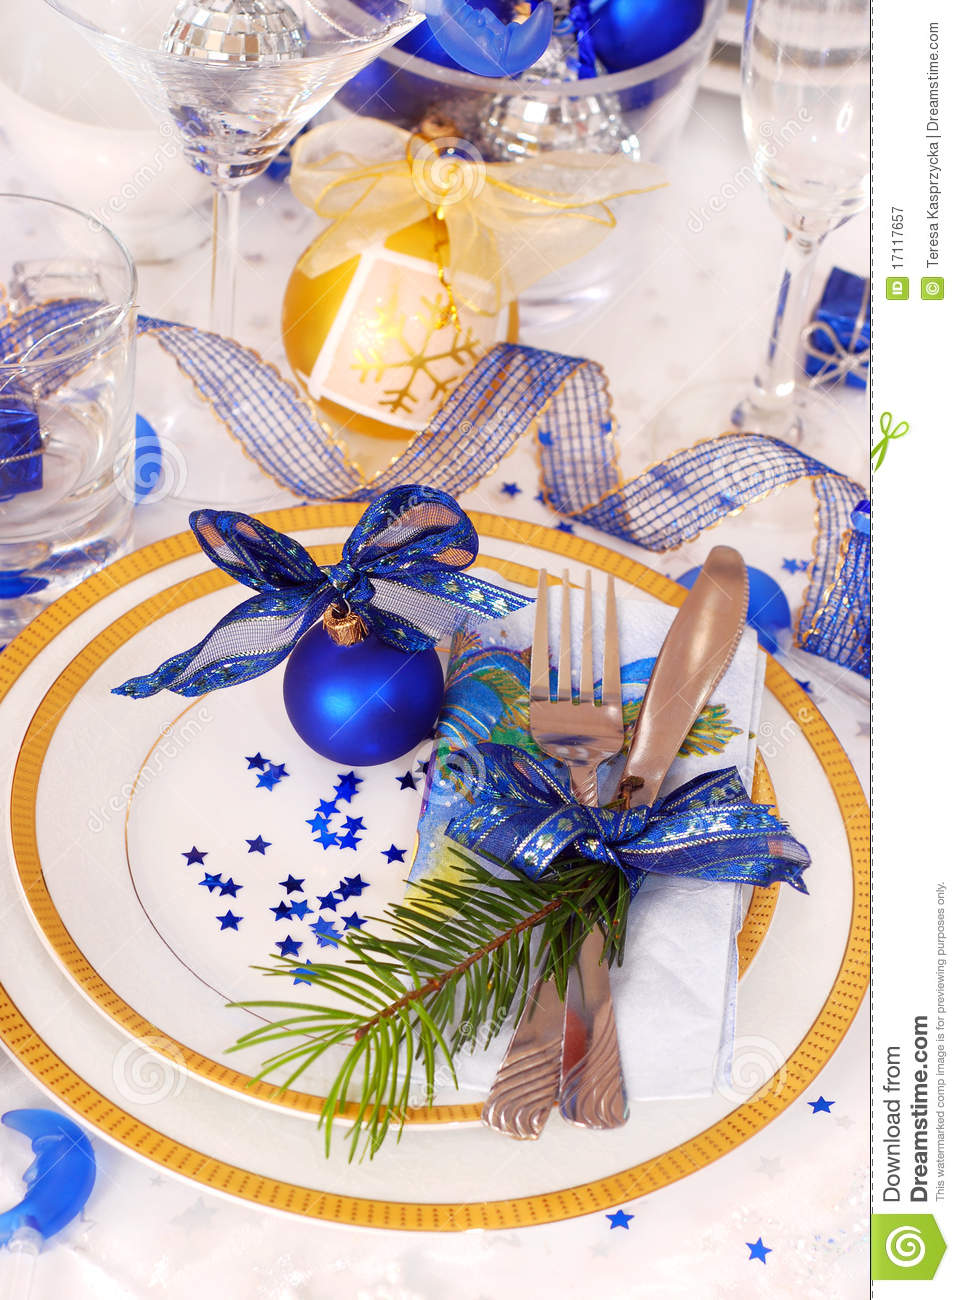 Christmas Table Setting In White And Blue Colors Stock Image Image